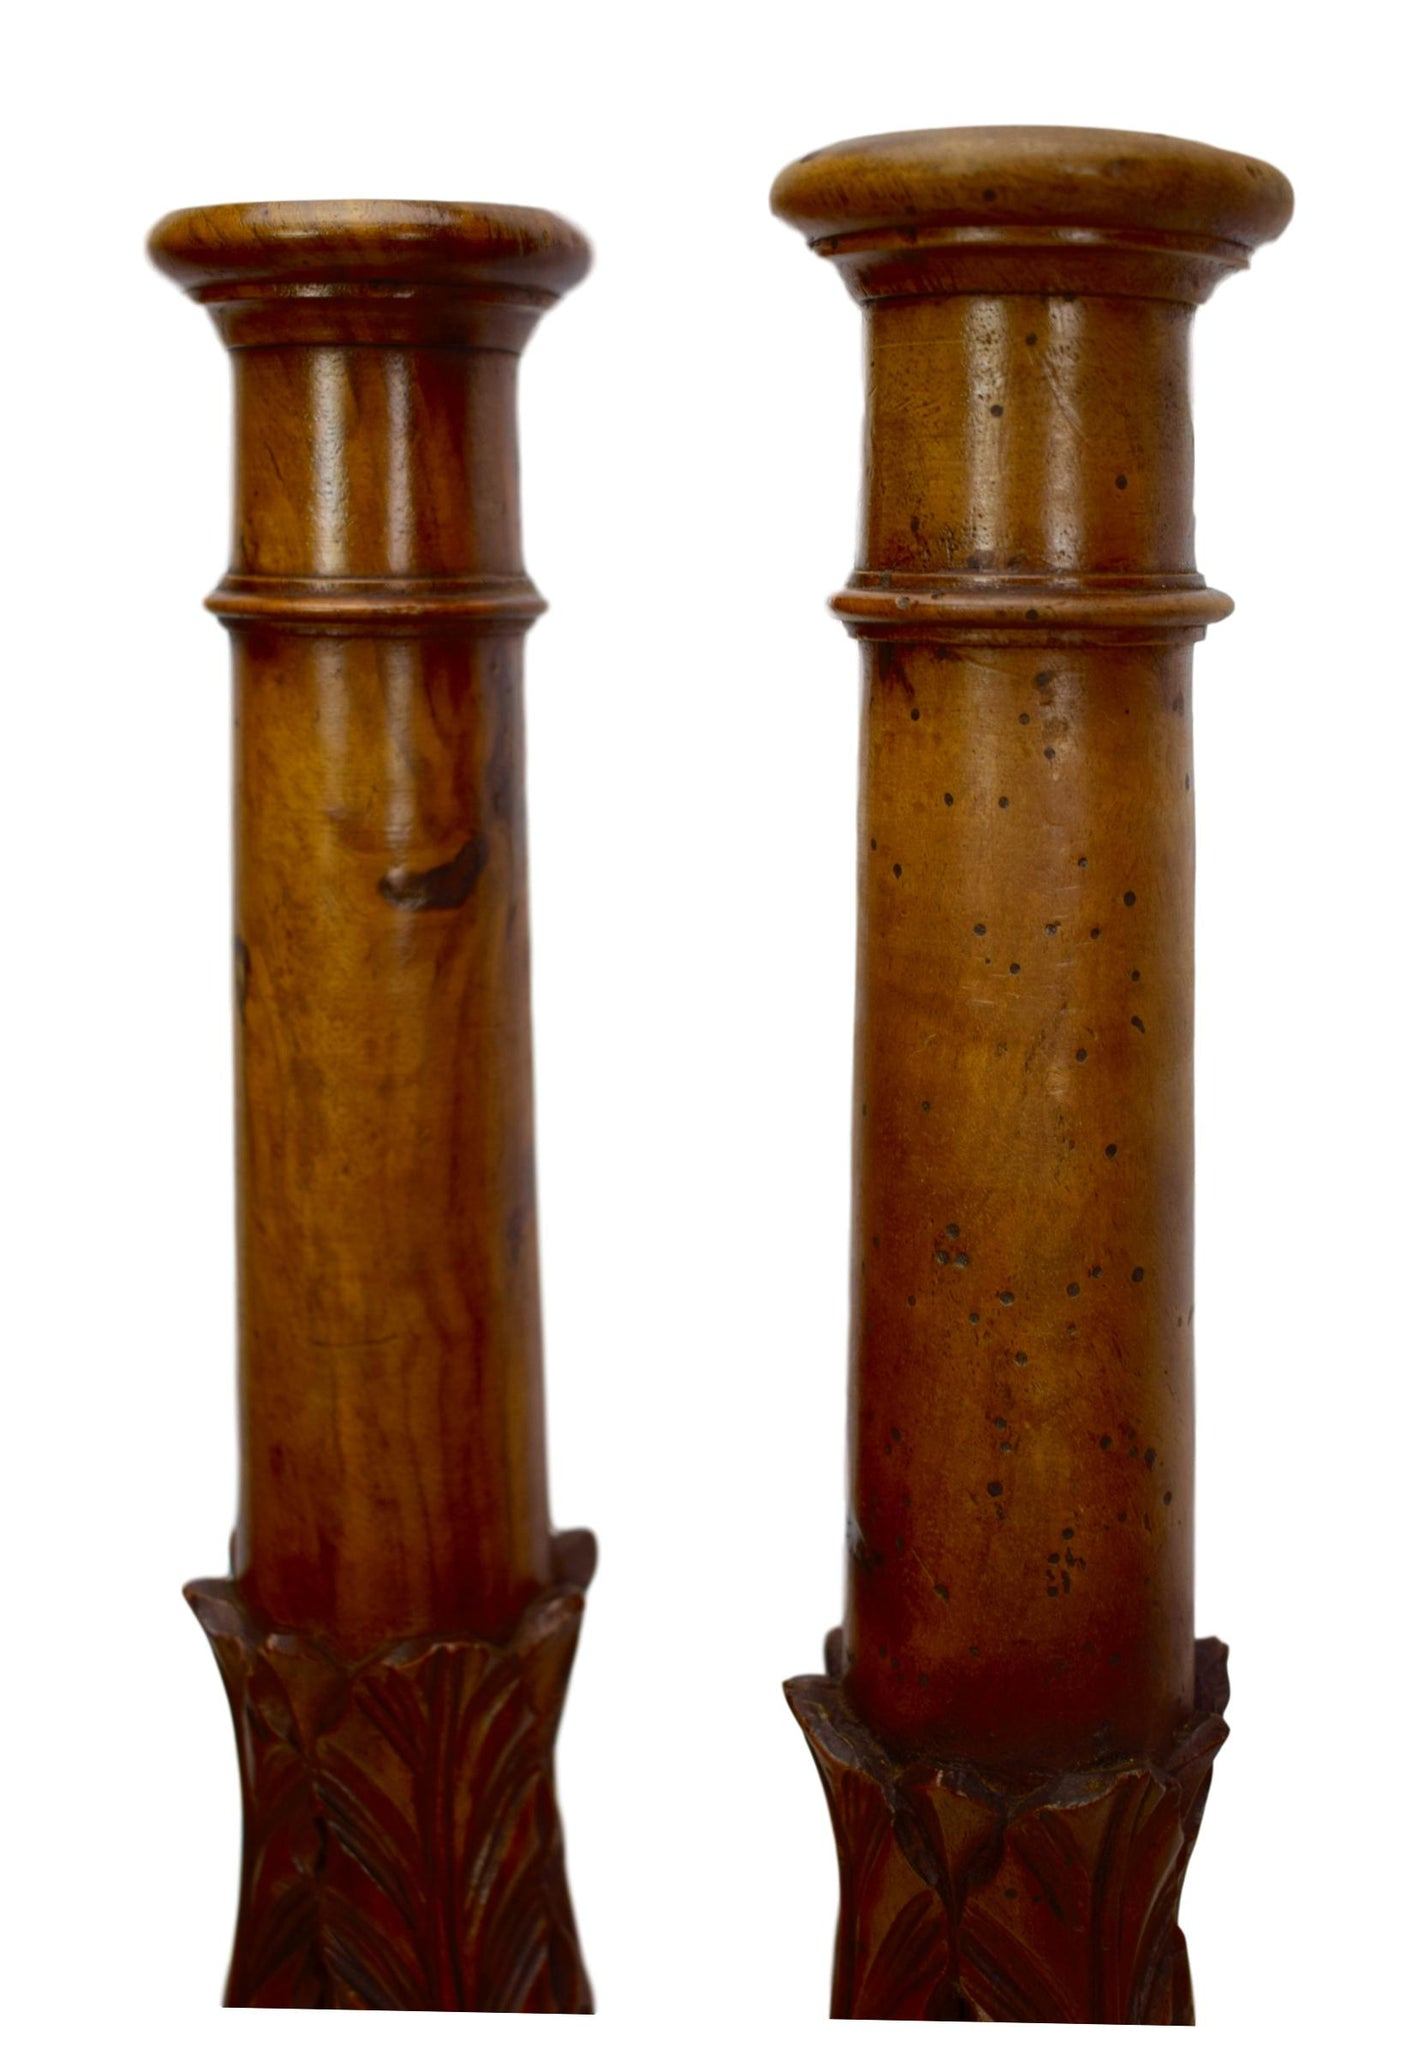 Salvaged Wood Columns - Charmantiques